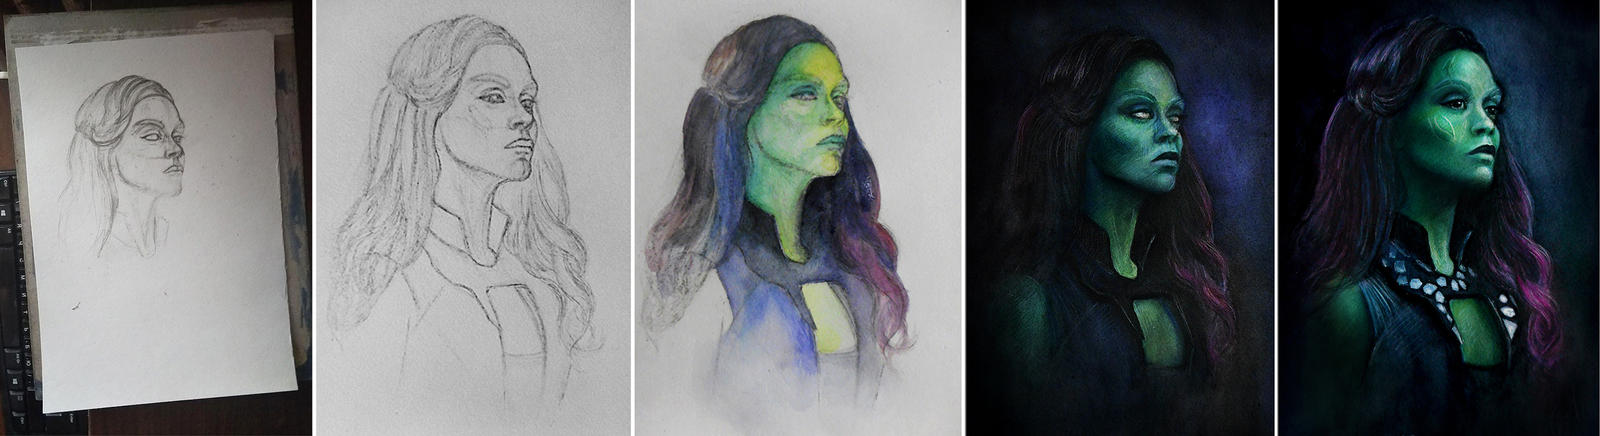 Gamora WIP by MeduZZa13